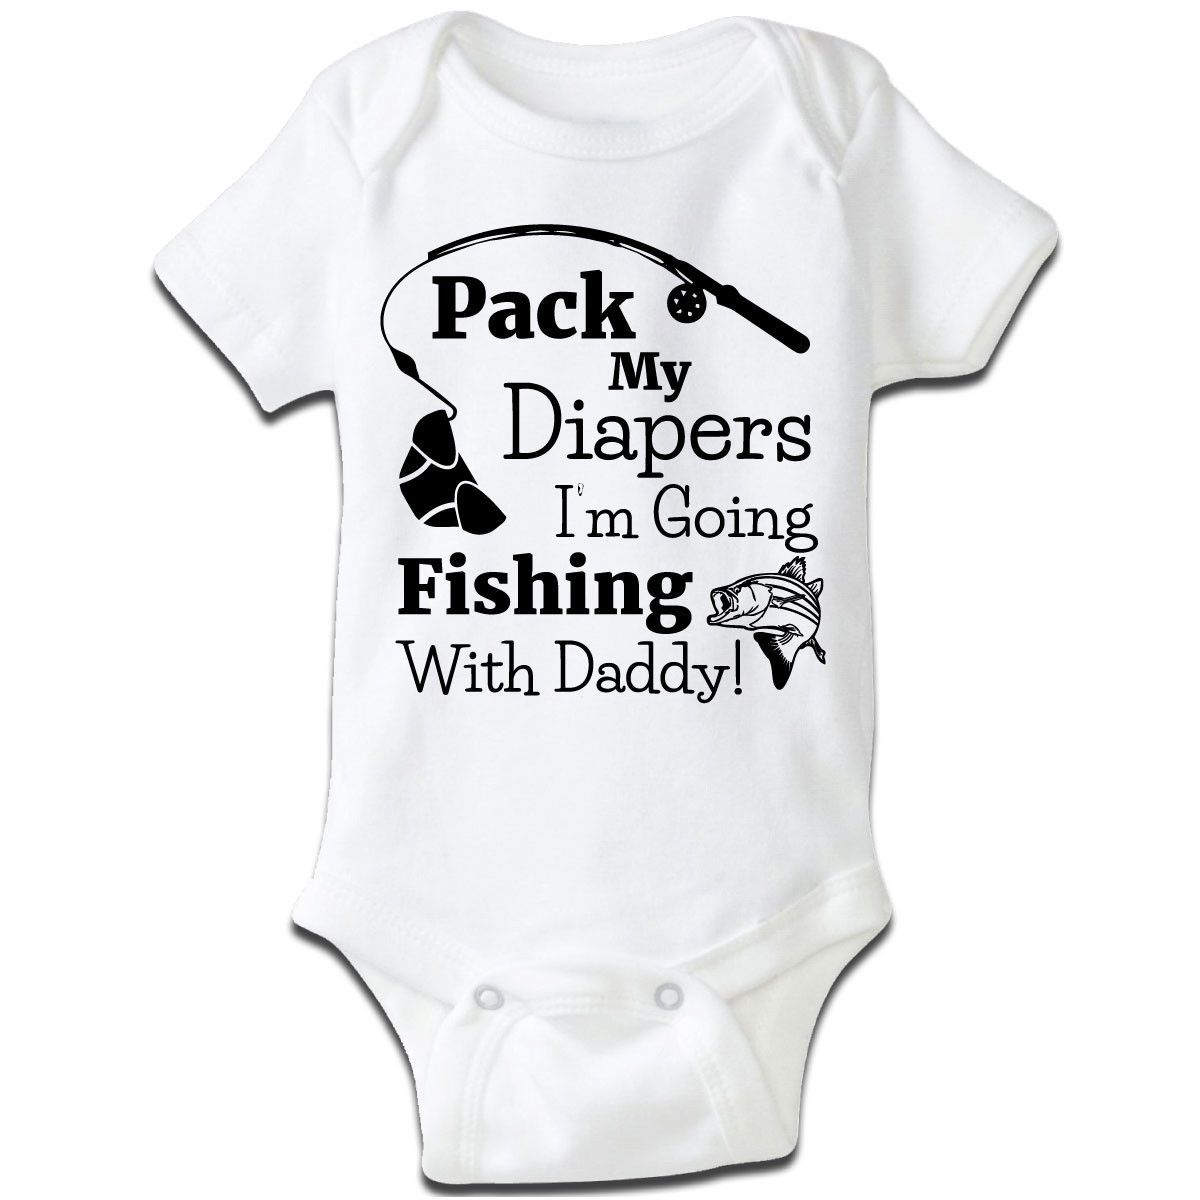 a65b3e692 I m Going Fishing With Daddy